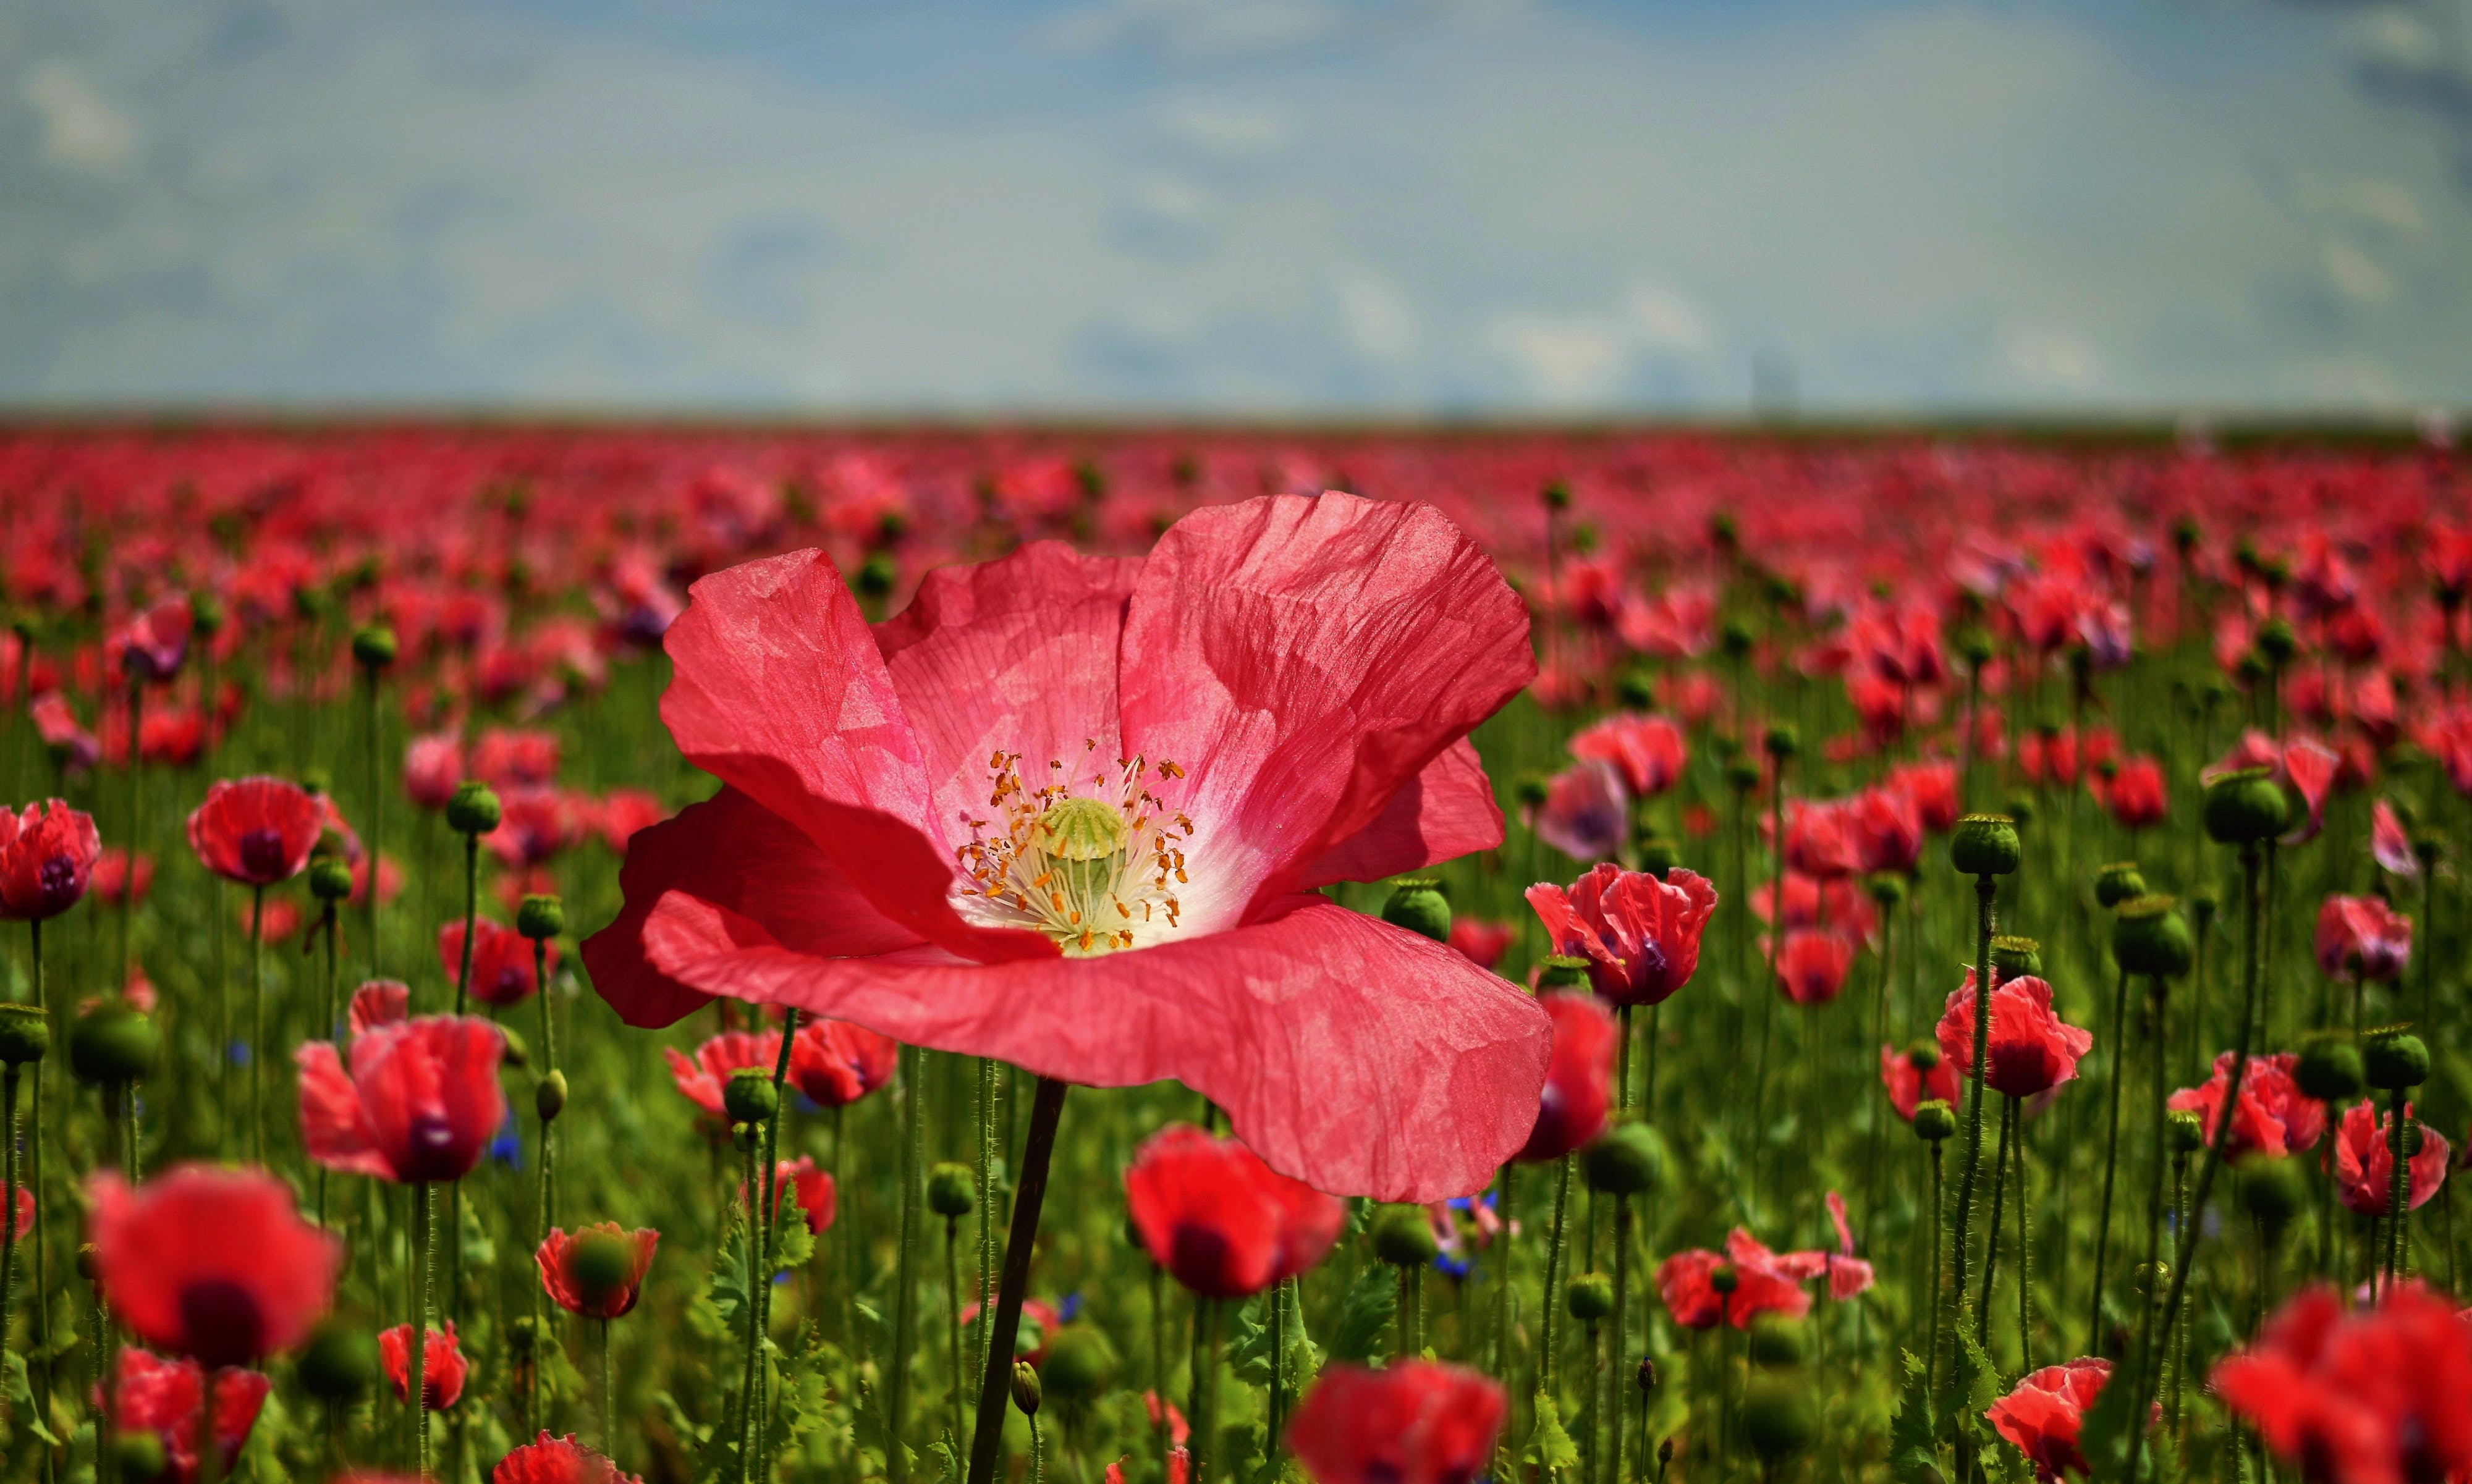 Field of Red Petaled Flowers